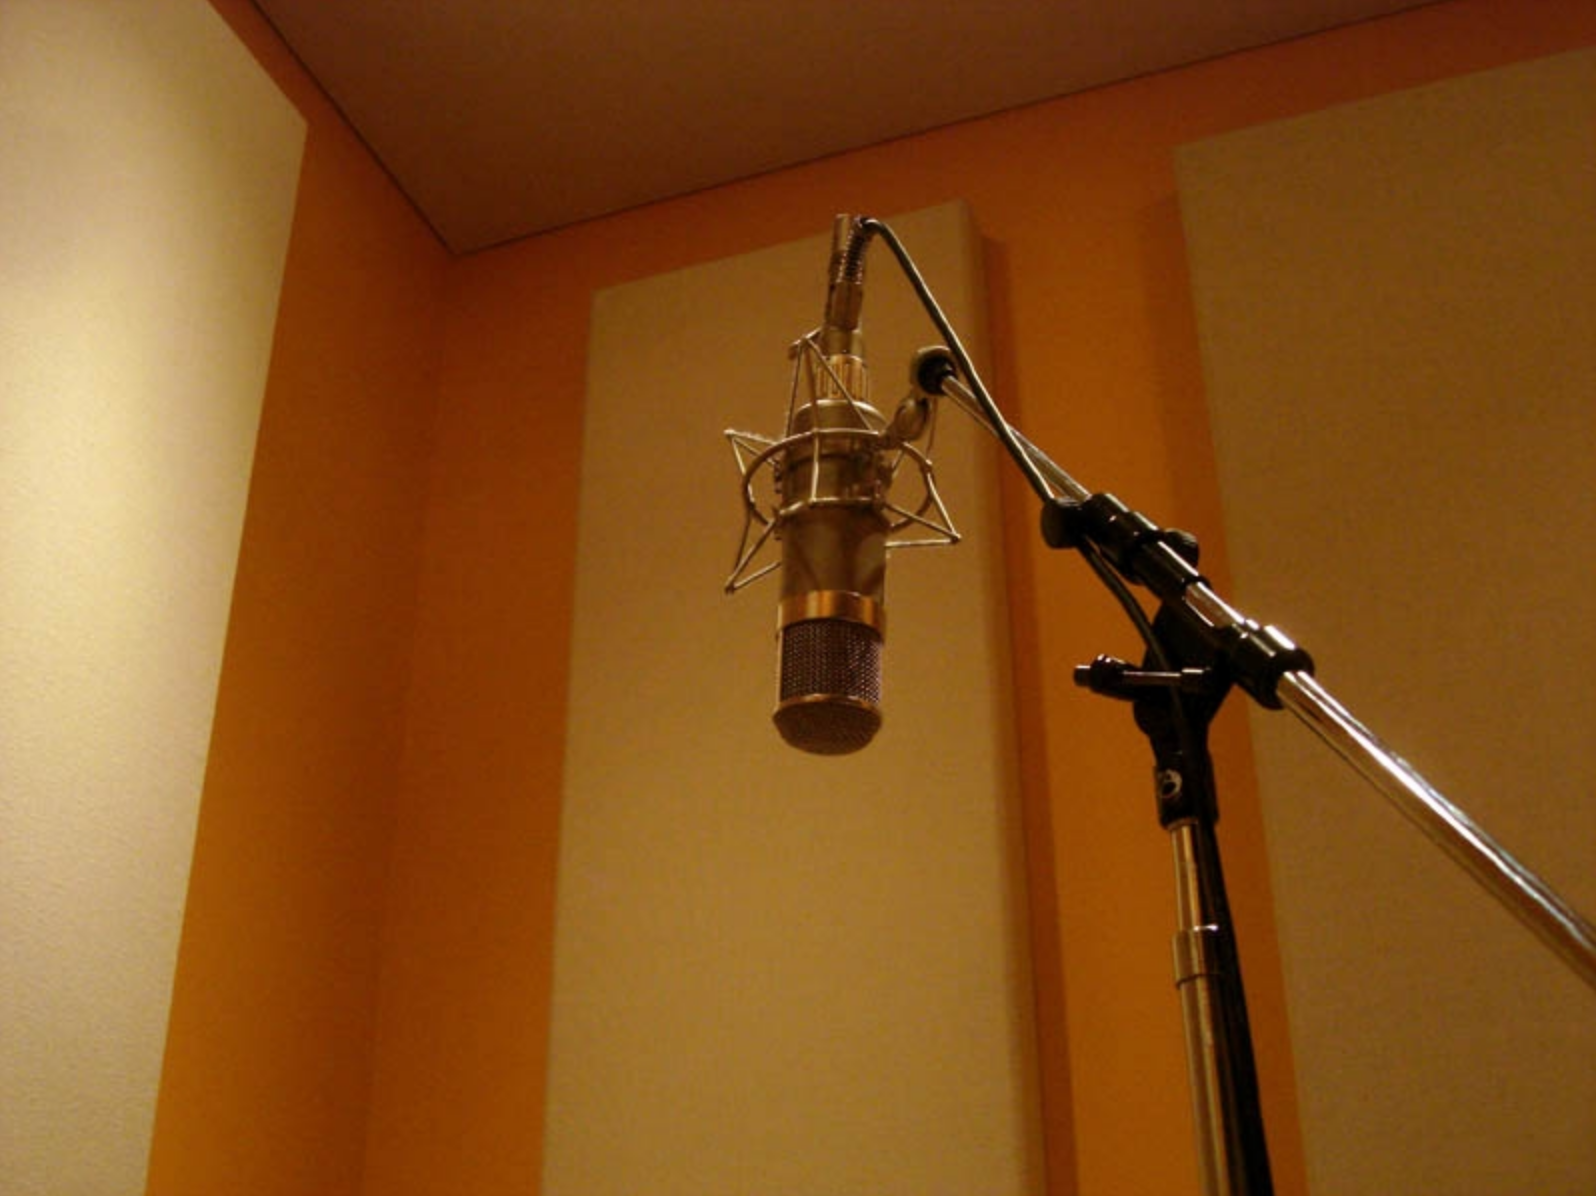 isolation booth (3)